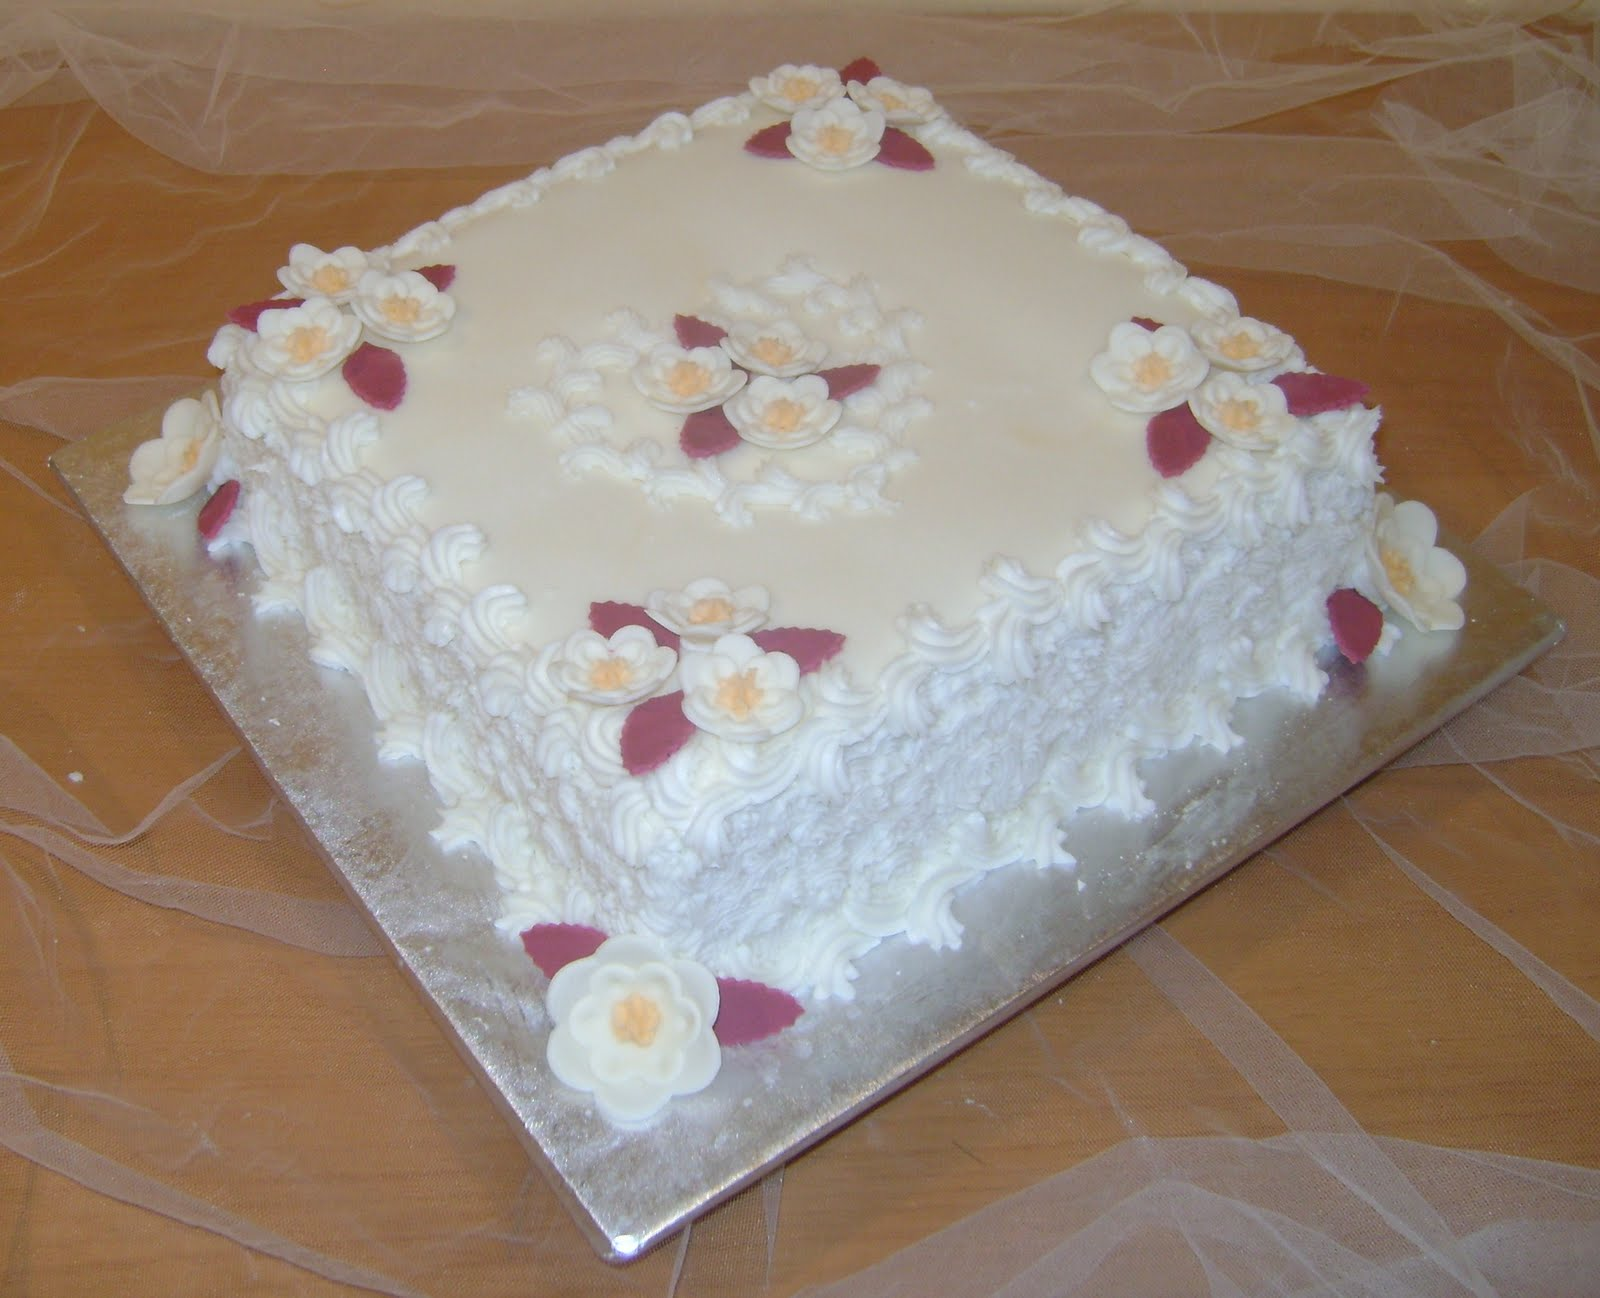 Birthday Cake Designs In Square : Marilyn s Caribbean Cakes: Heart on Square Cake